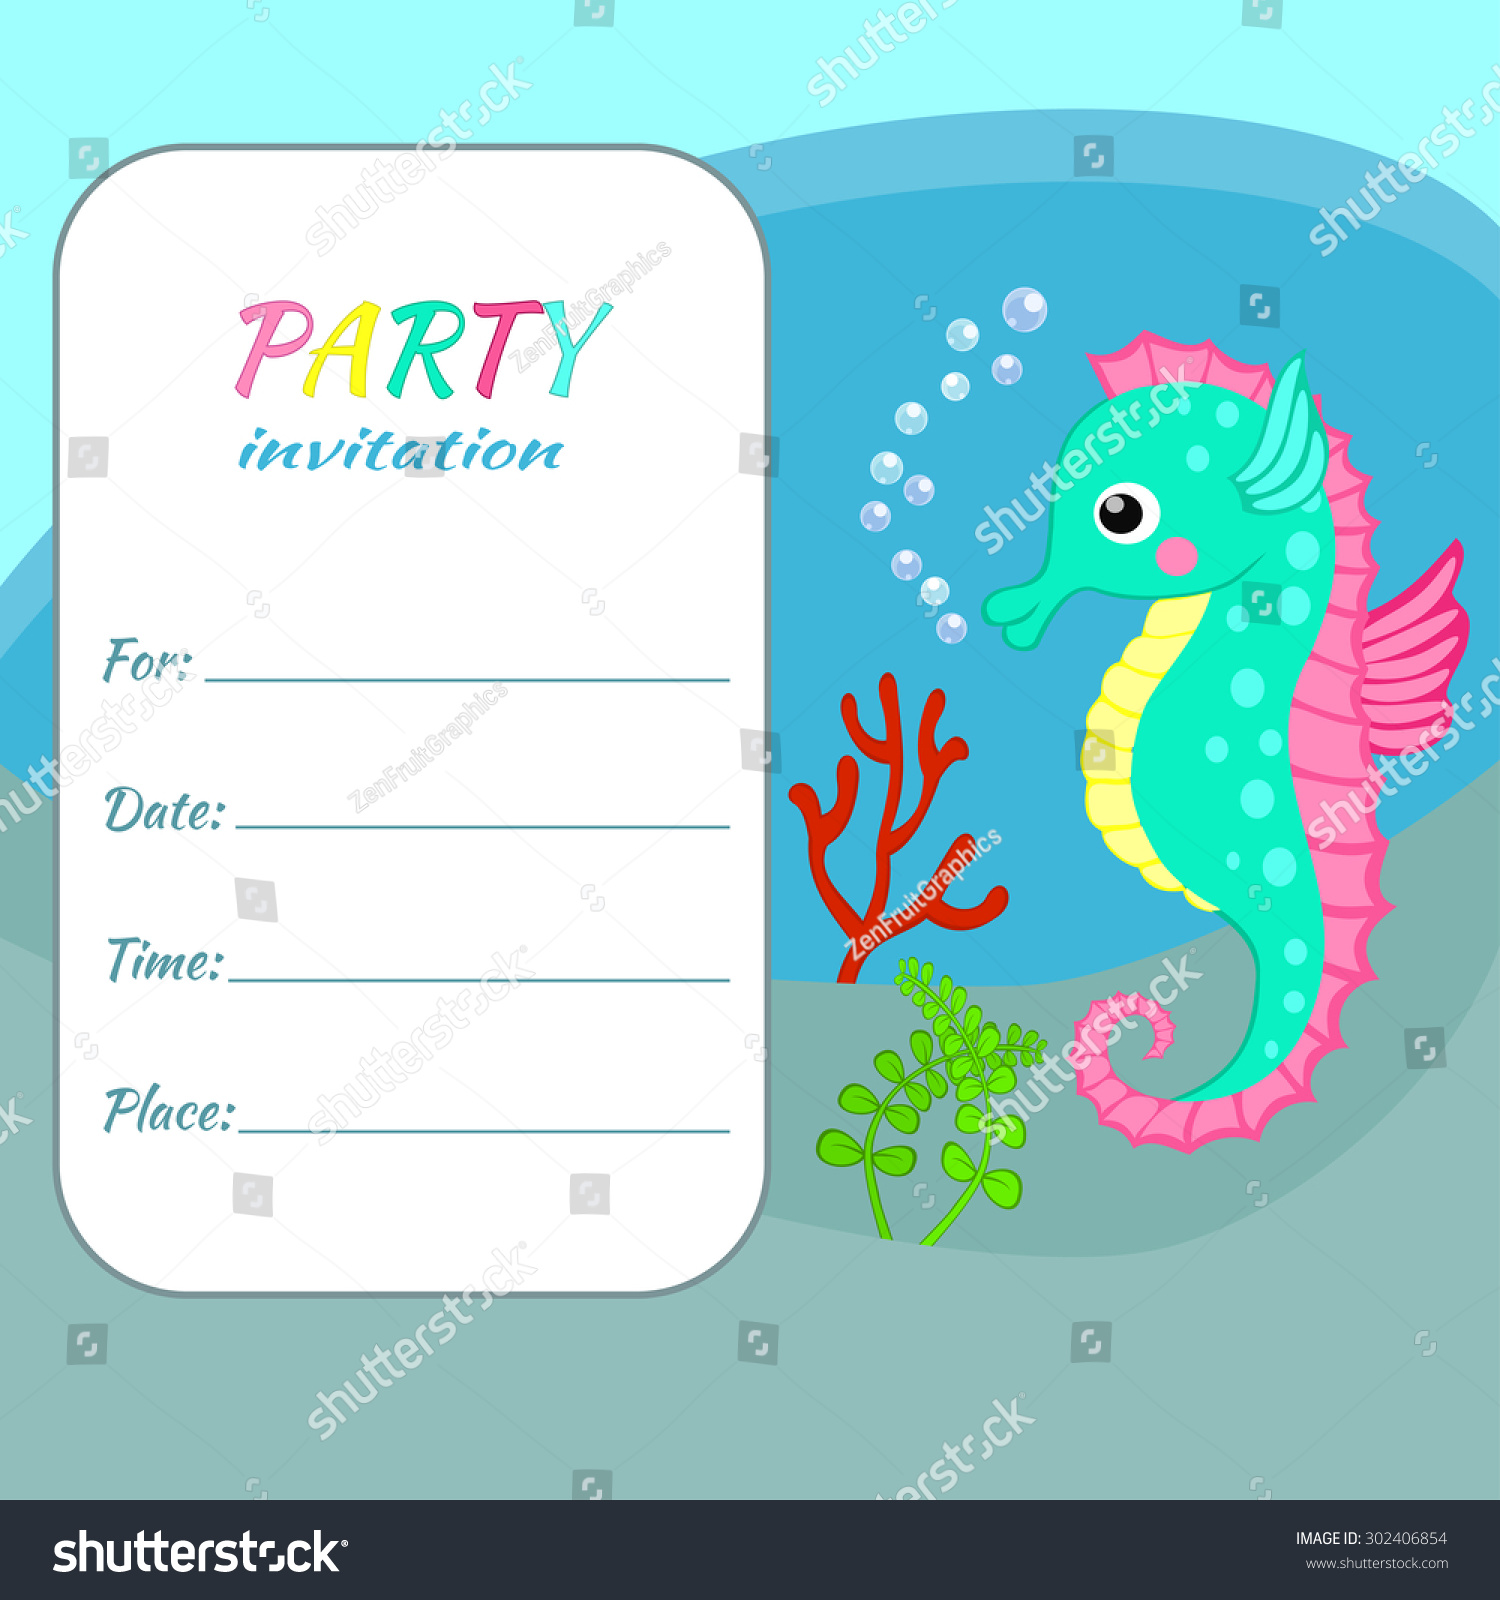 Birthday Invitation Email Template - Free online invitation cards for birthday party